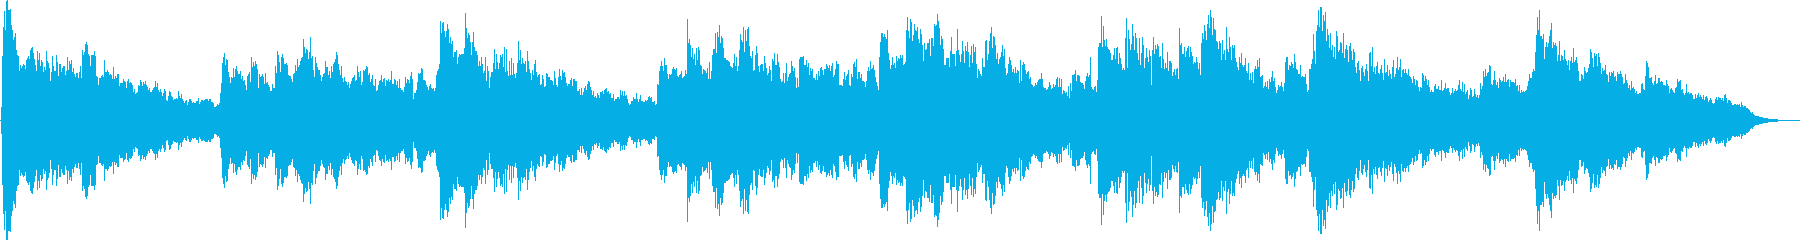 Gently warm BGM of flute main's reproduced waveform